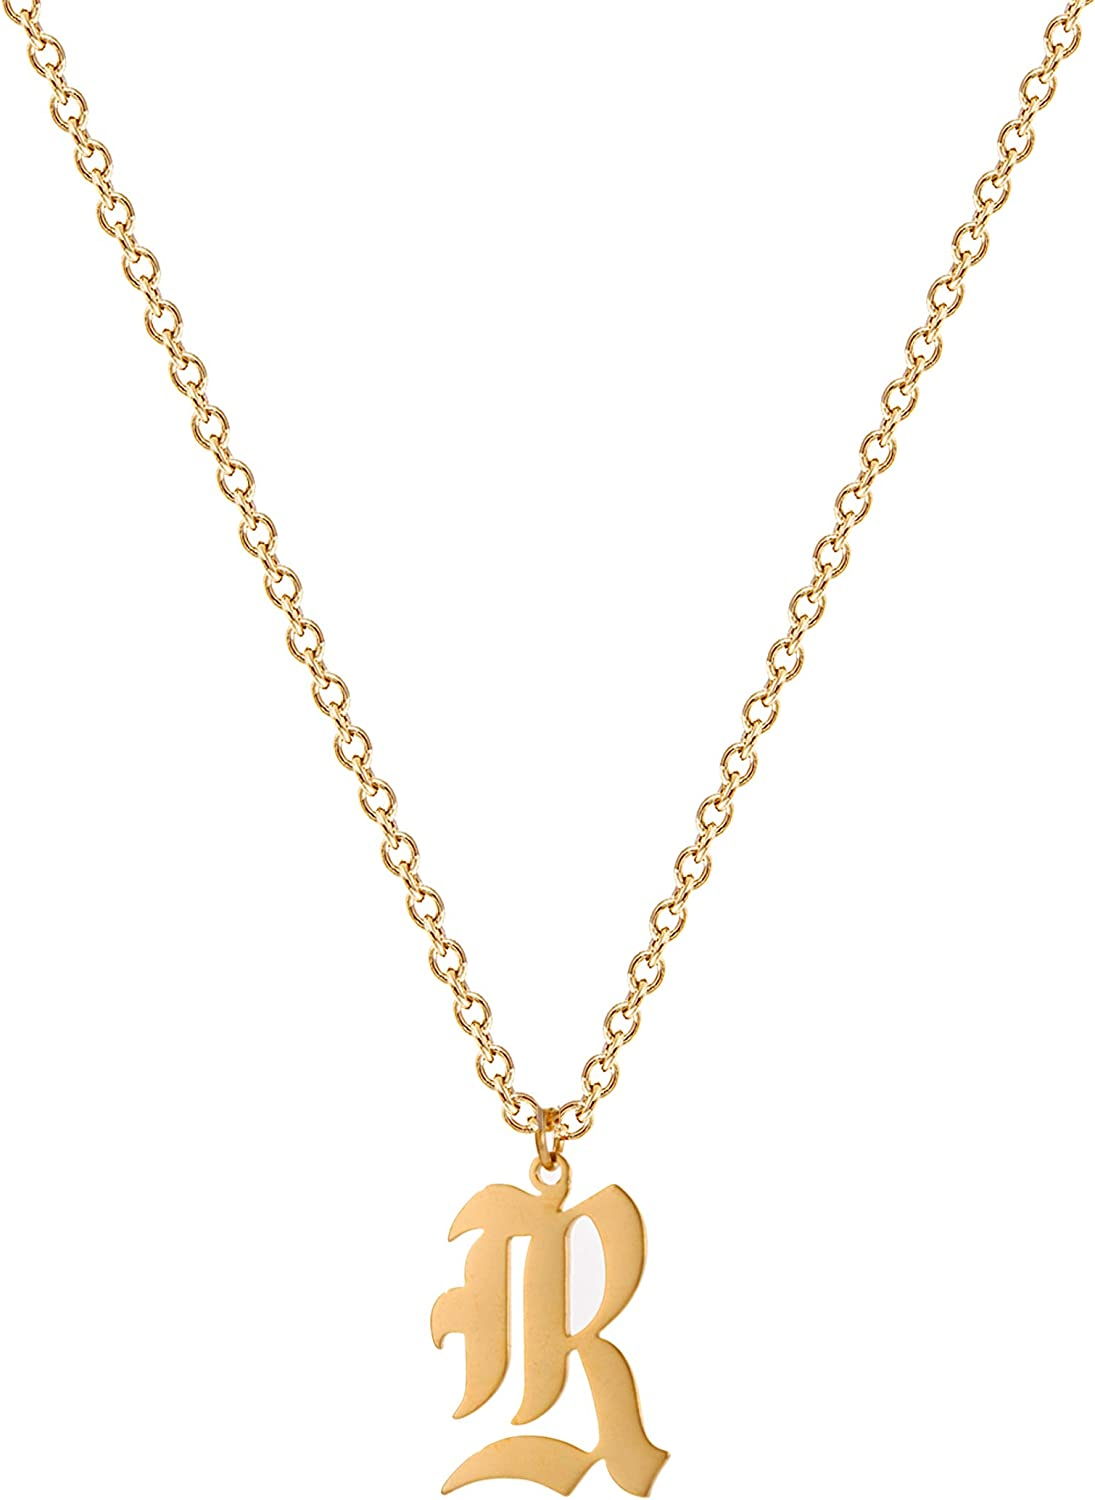 Sewyer Old English Initial Necklace,18K Gold Plated Stainless Steel Dainty Personalized Gothic Letter Pendant Handmade Alphabet Name Necklace Gift for Women Necklace Jewelry